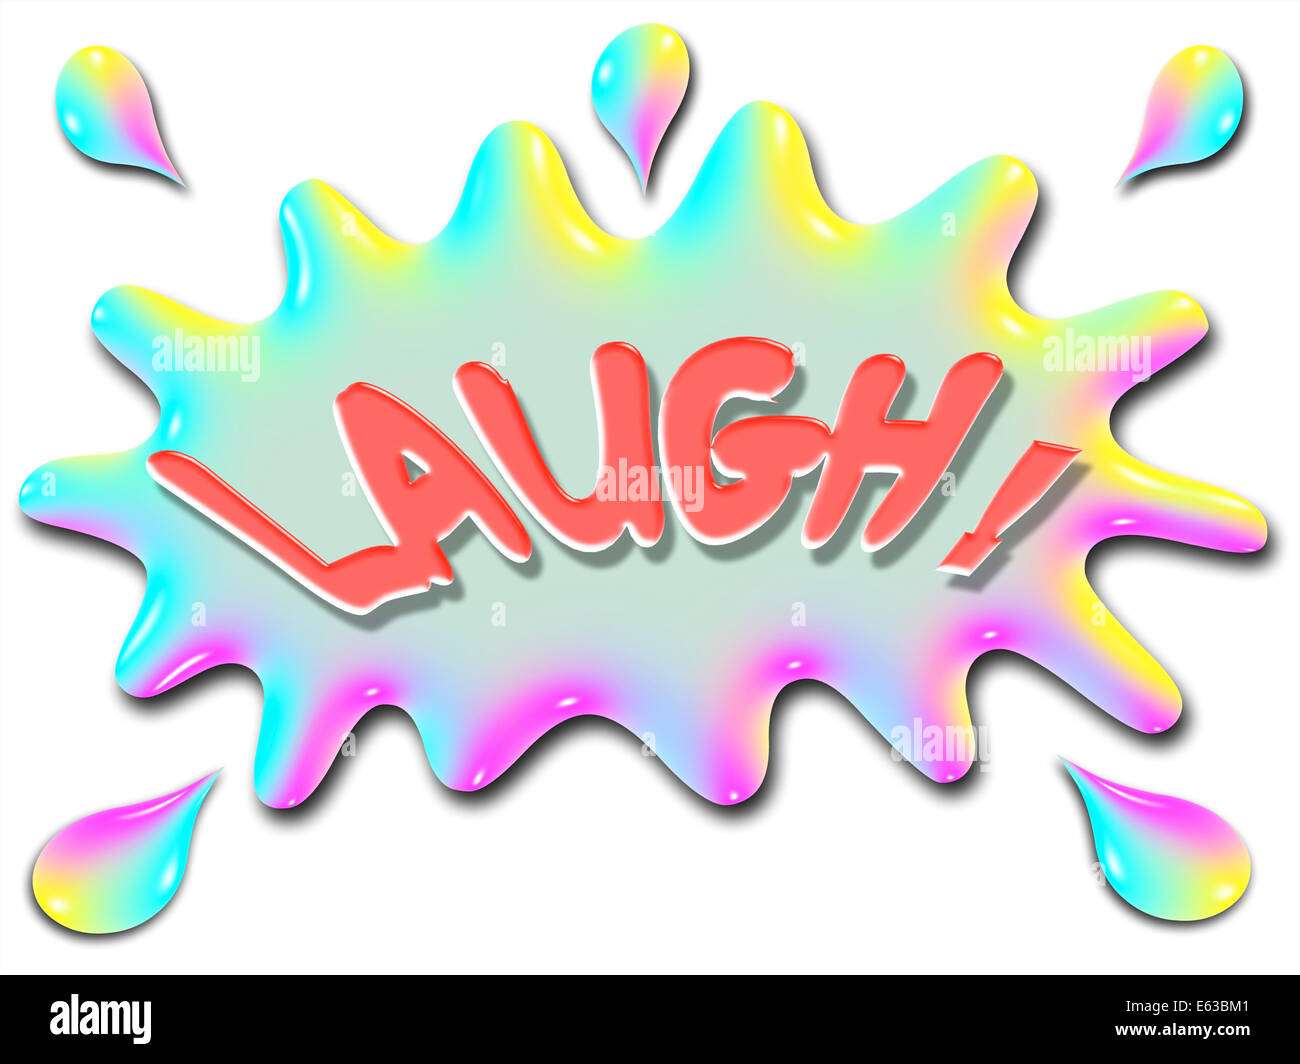 The word Laugh is shown on top of a stylized splash of ...